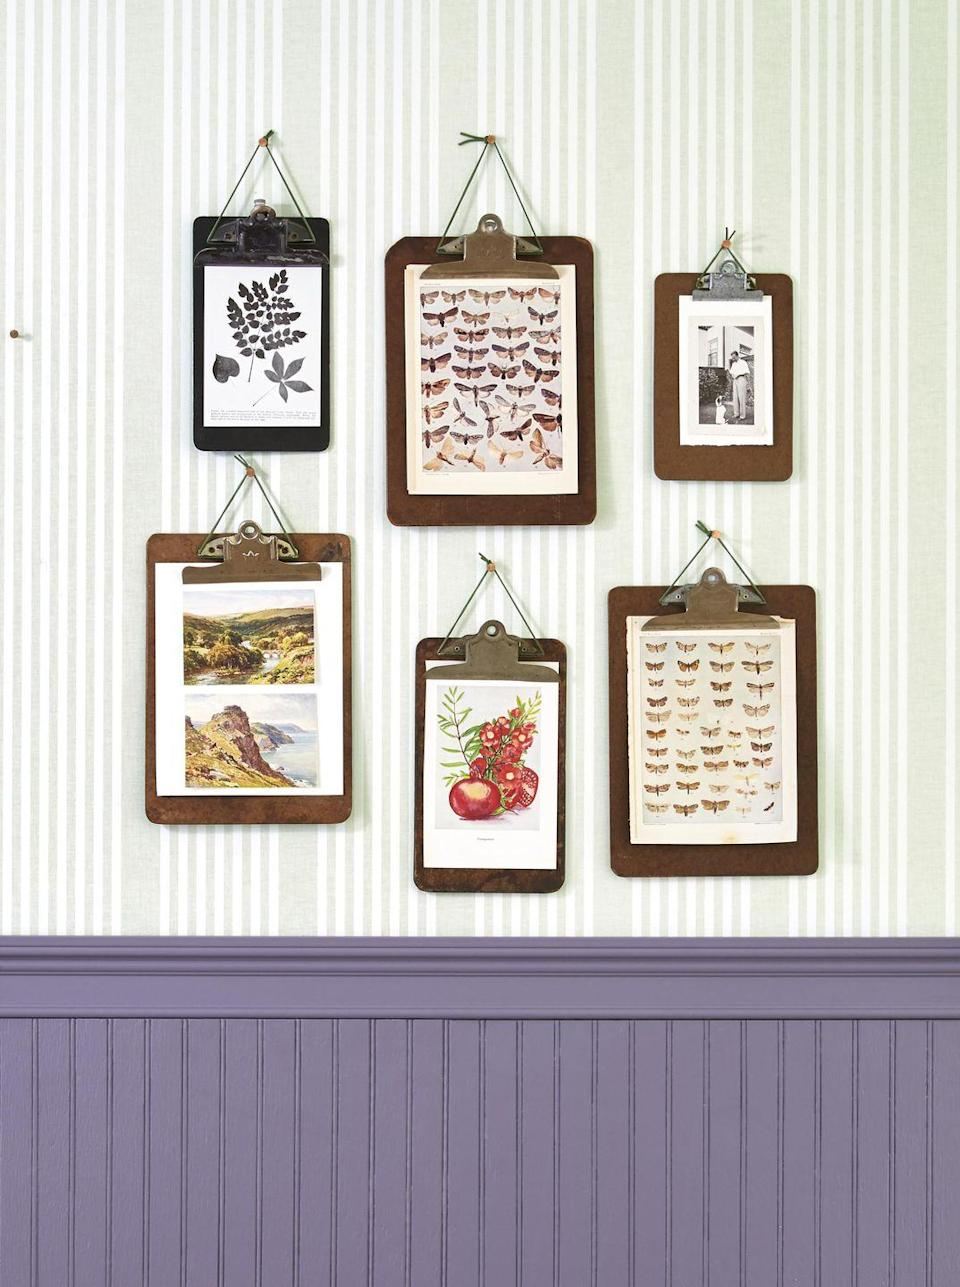 <p>Gallery walls add instant decor to an unadorned wall but frames can get quite expensive. For this budget-friendly arrangement, simply clip prints to vintage clipboards. Thread a piece of leather jewelry cord under the clip, knot it at the top, and hang with a pushpin. Bonus: You can easily change out the images every season. </p>